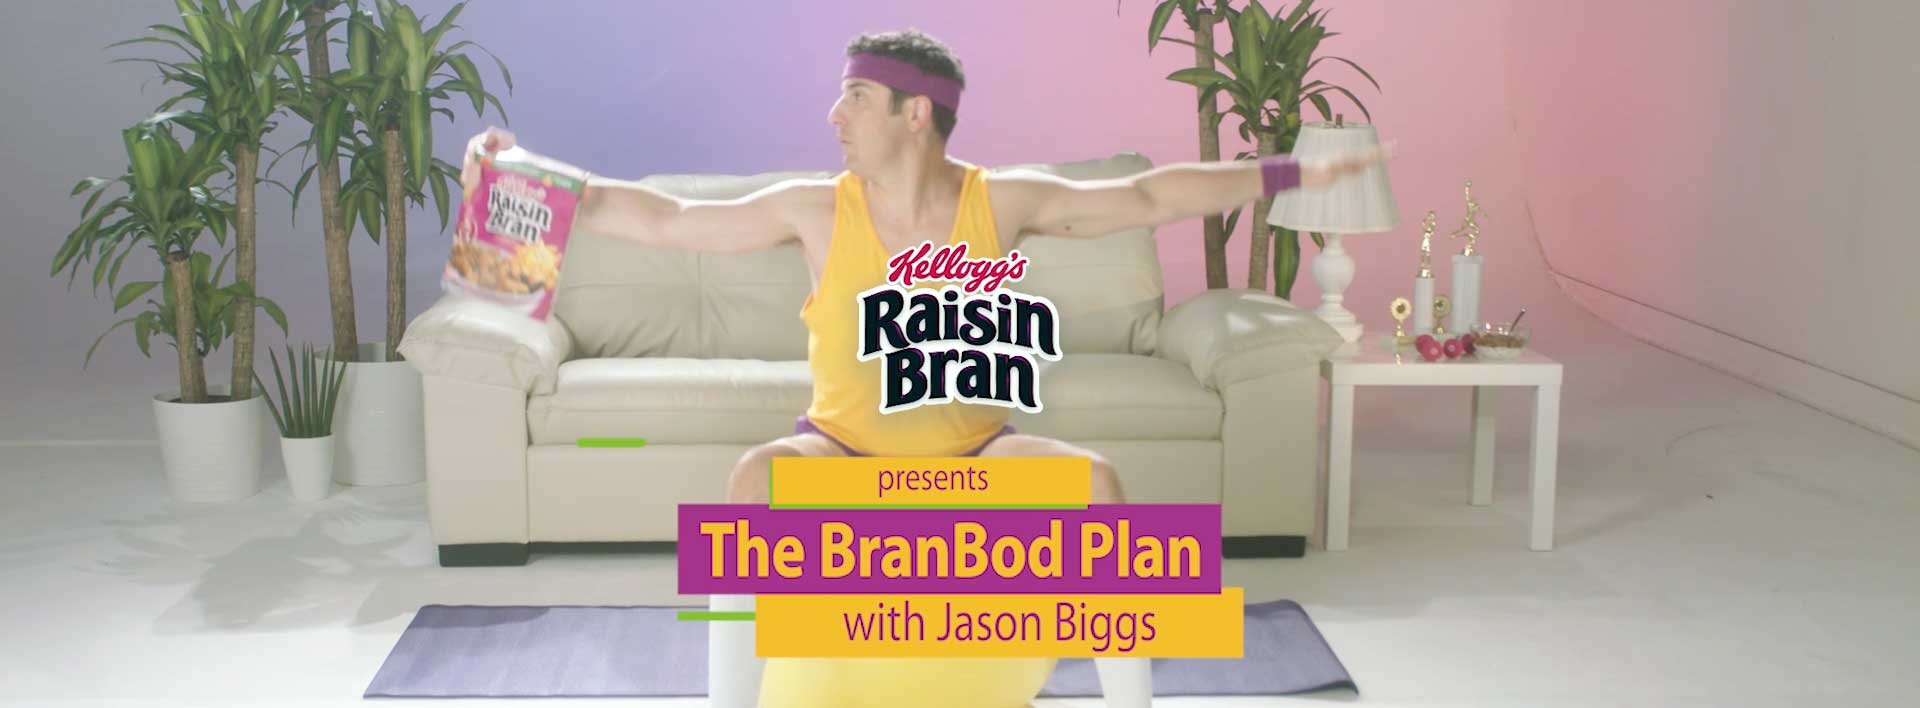 Jason Biggs Introduces His Kellogg's Raisi...